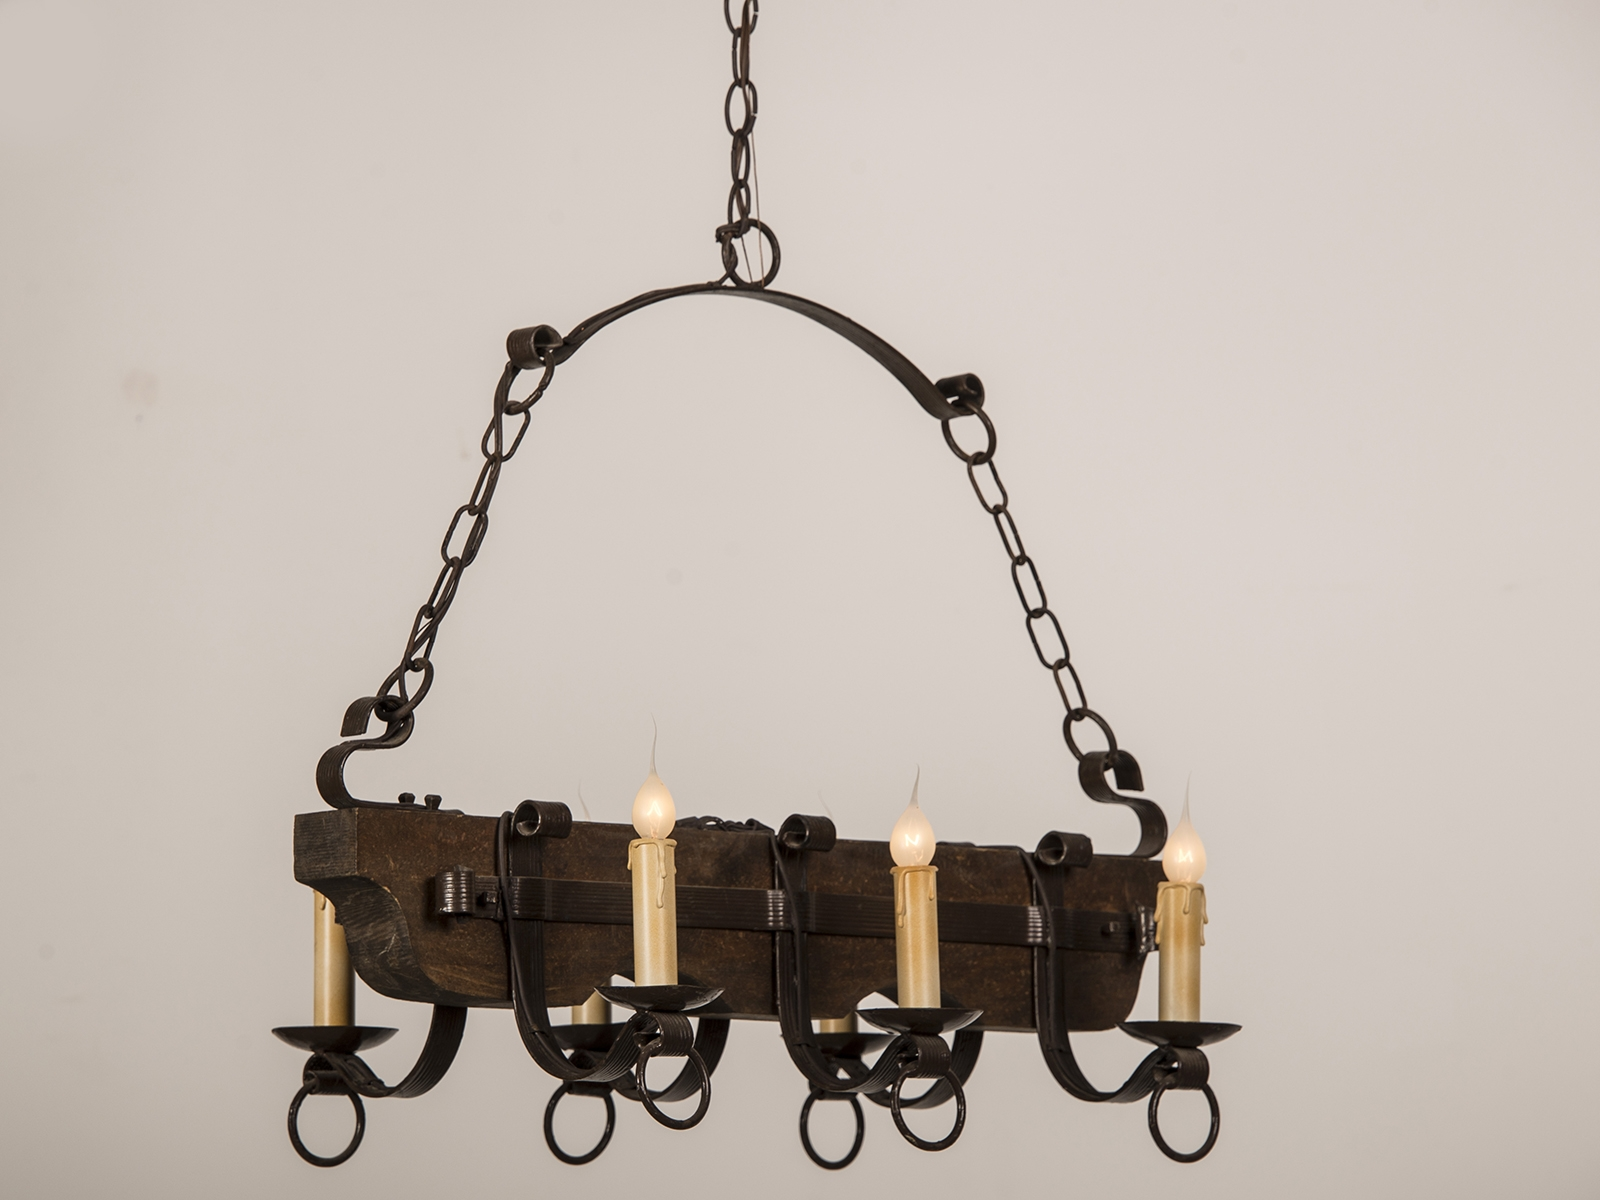 rod crystals black mprnaccom gallery wrought iron chandelier with and custom lighting shades chain shade